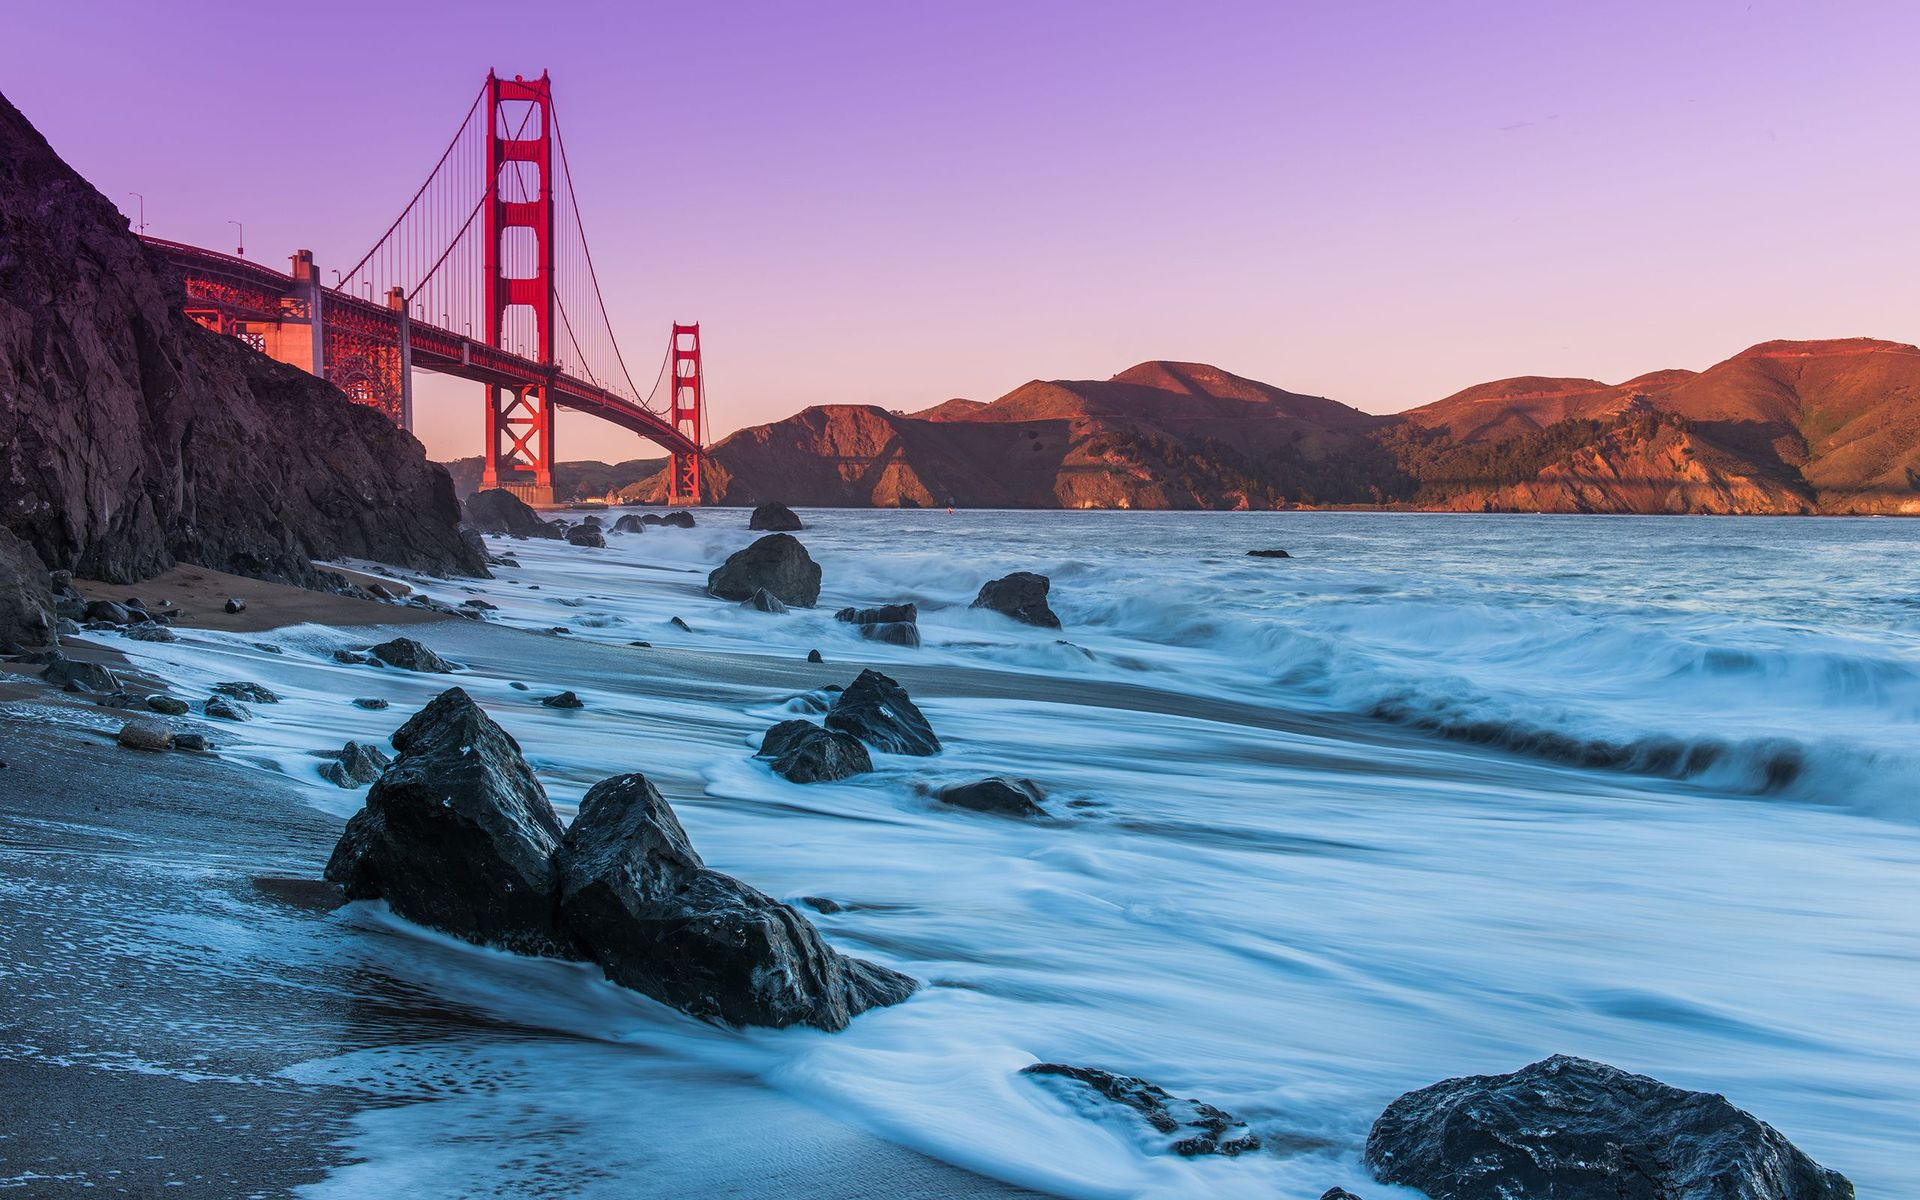 Download Golden Gate Bridge San Francisco wallpaper 1920x1200